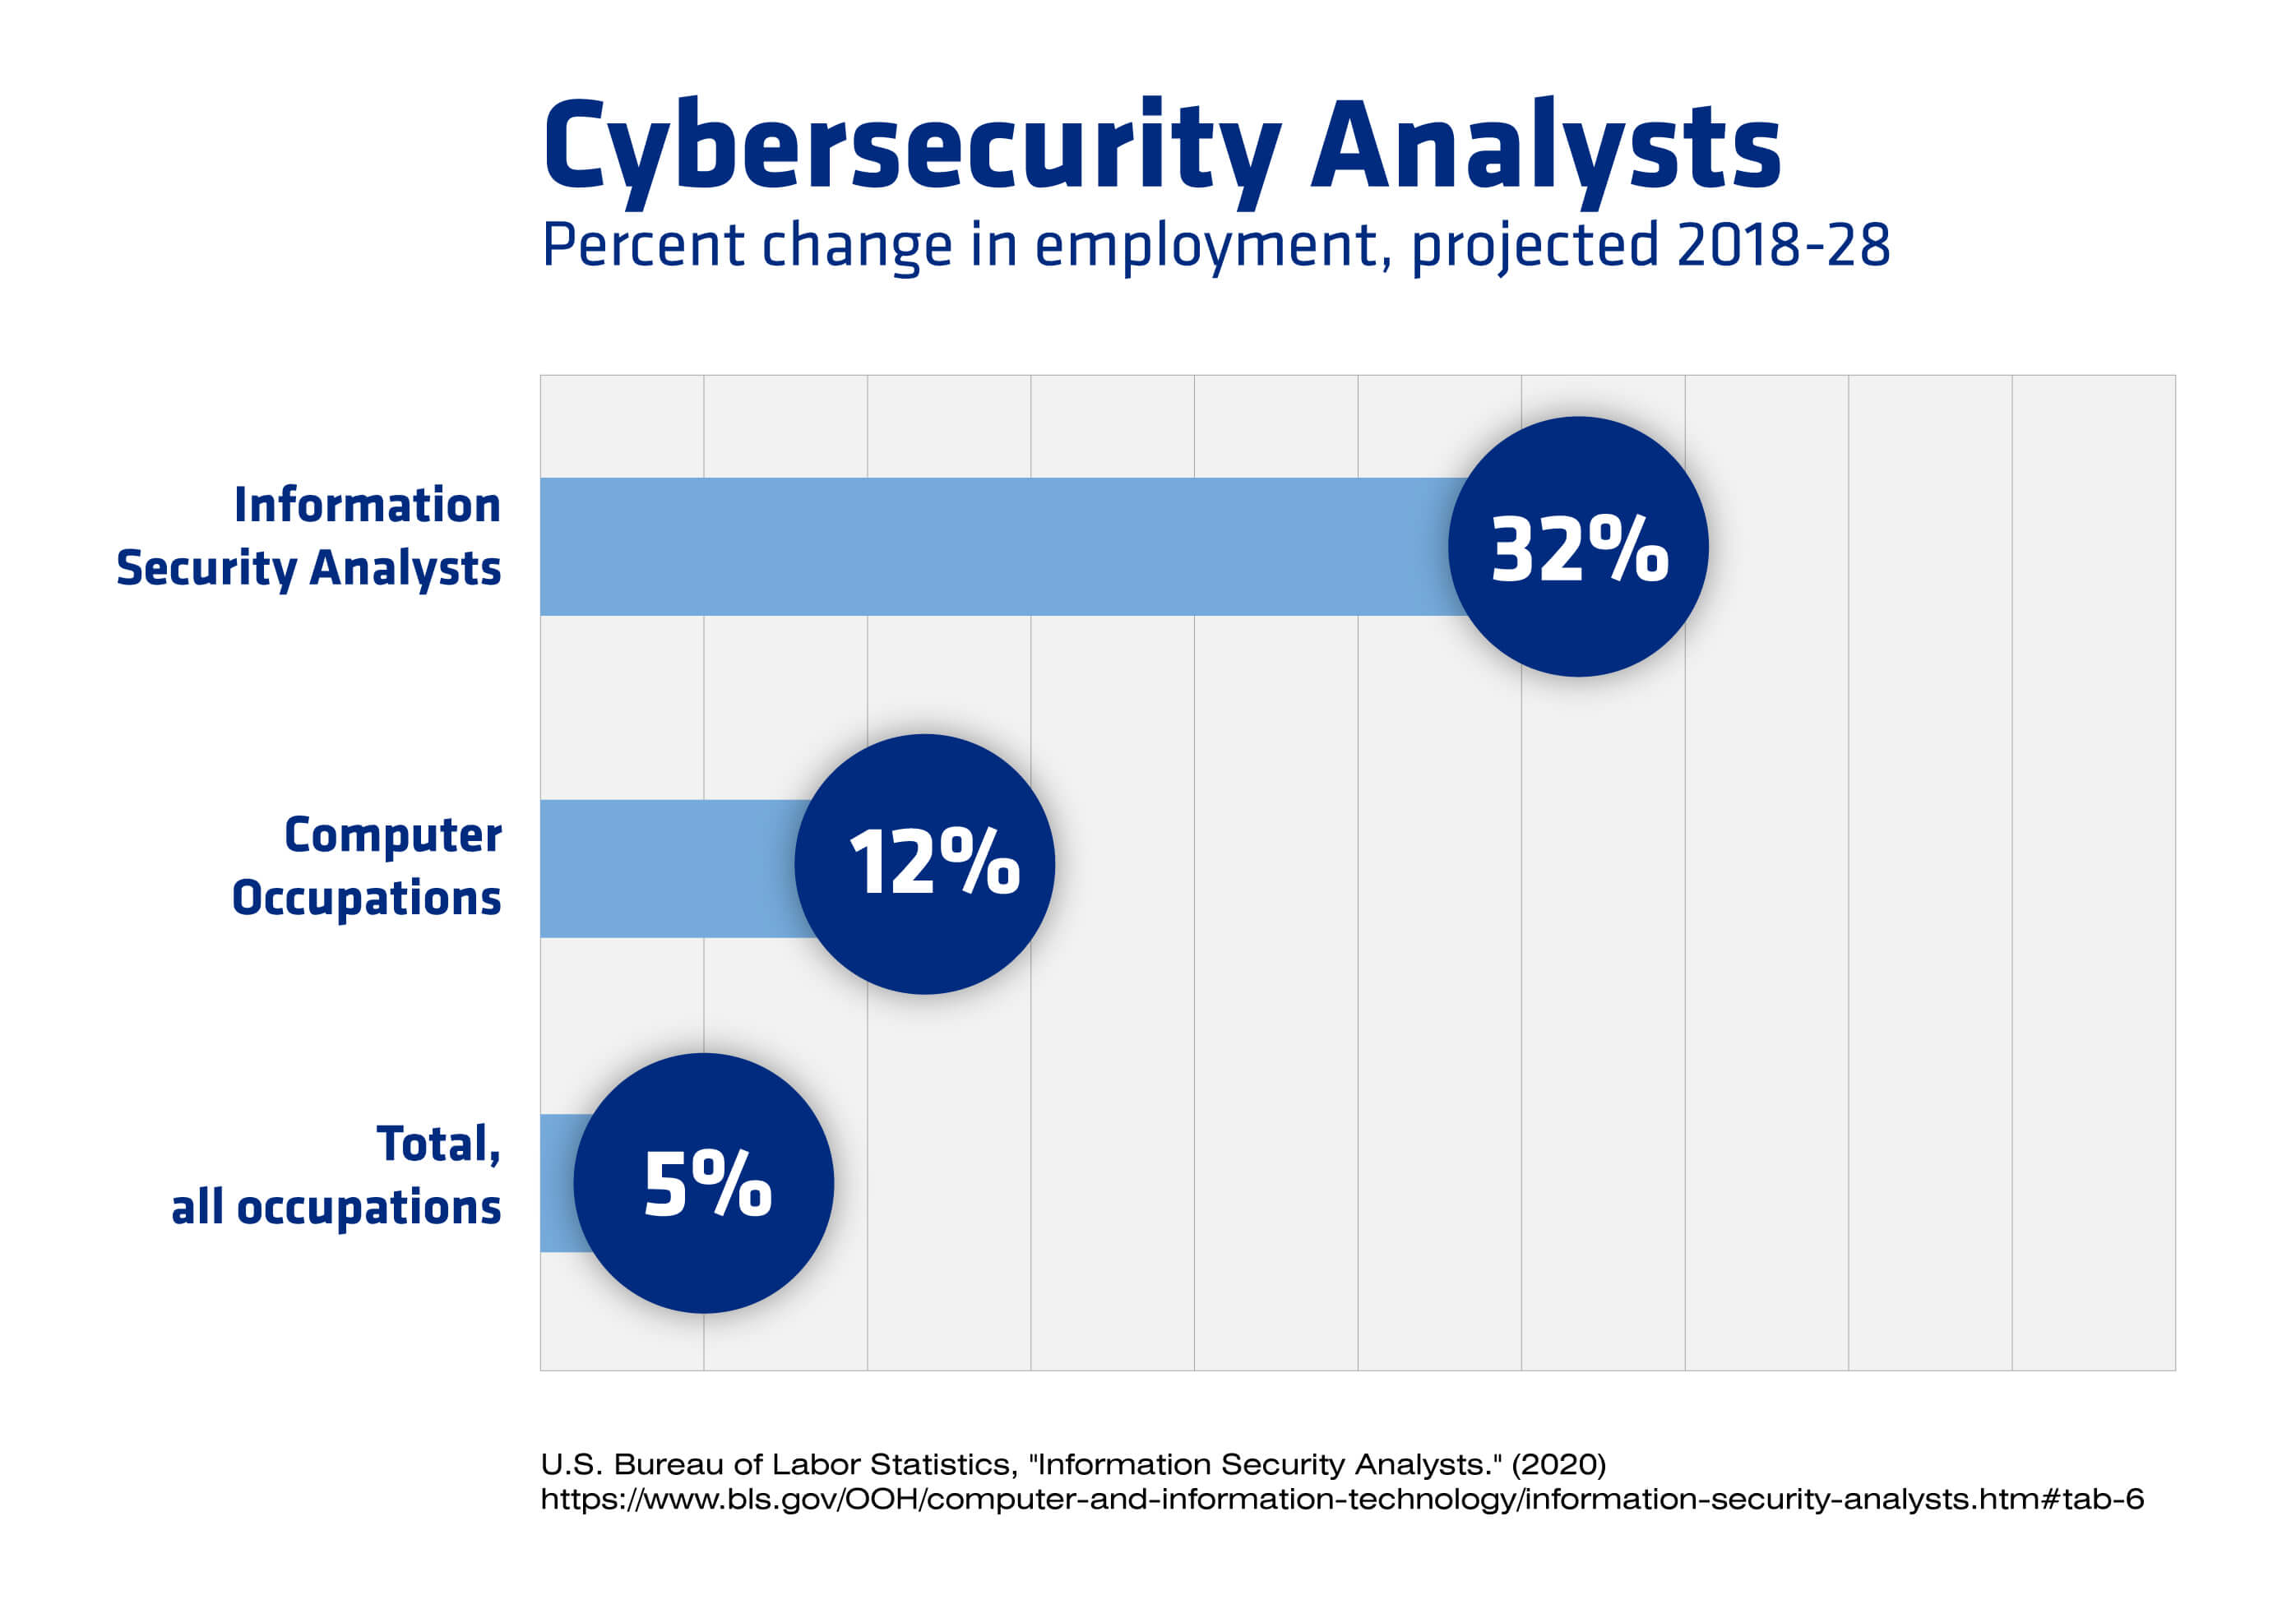 A chart showing employment growth for cybersecurity analysts